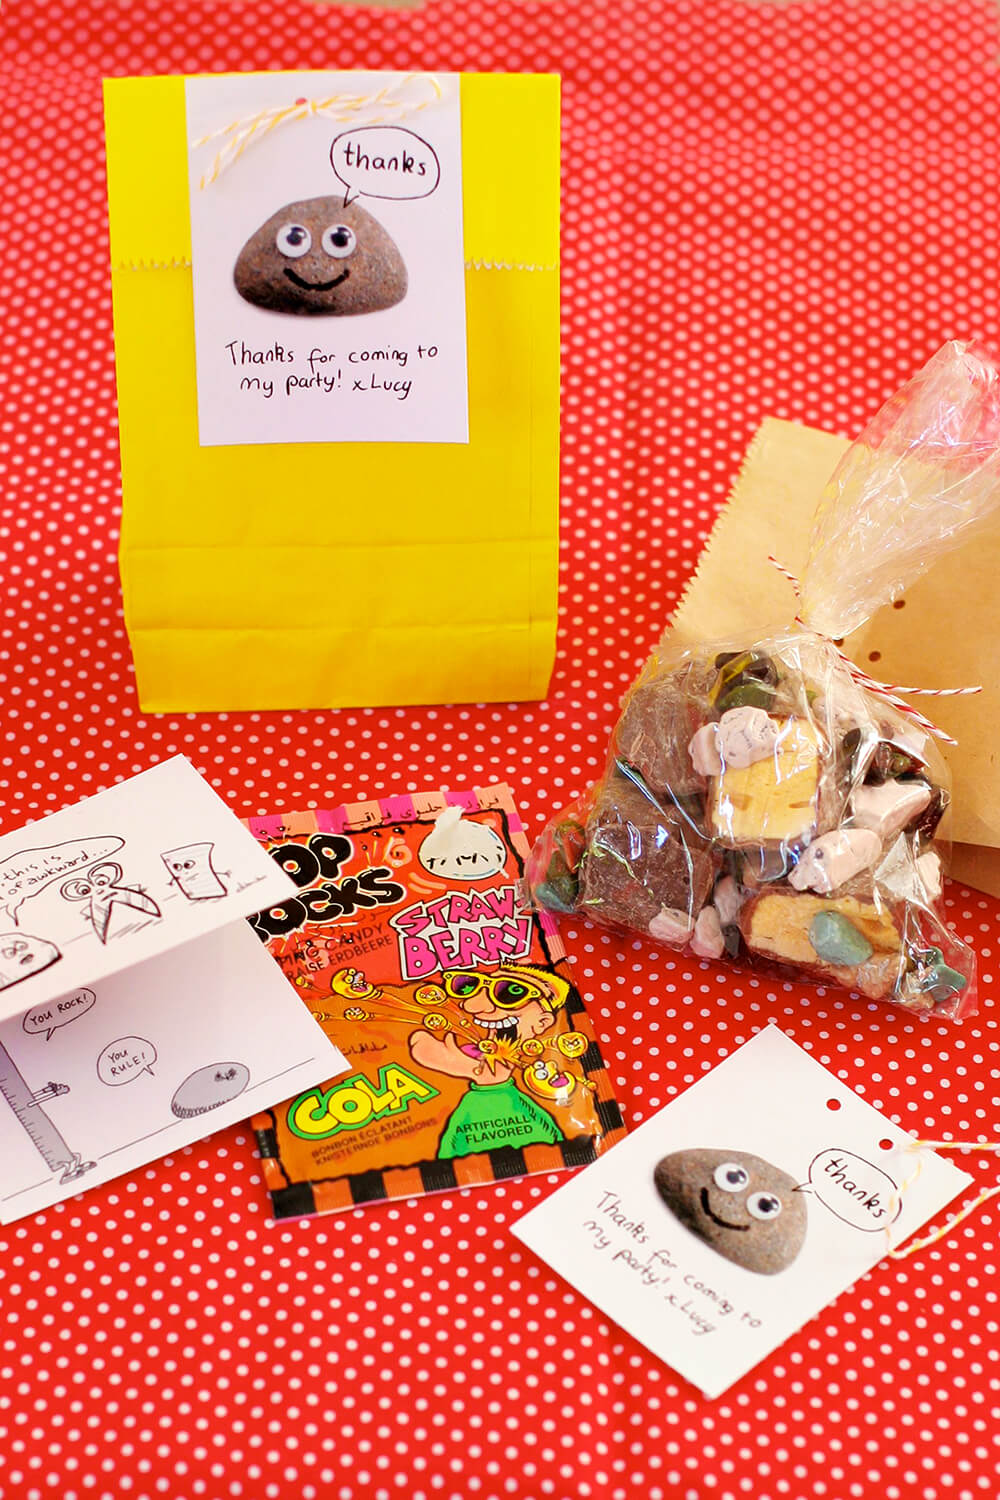 We had A LOT of fun putting together the party favour bags! Rock candy, honeycomb, rock jokes and pop rocks.